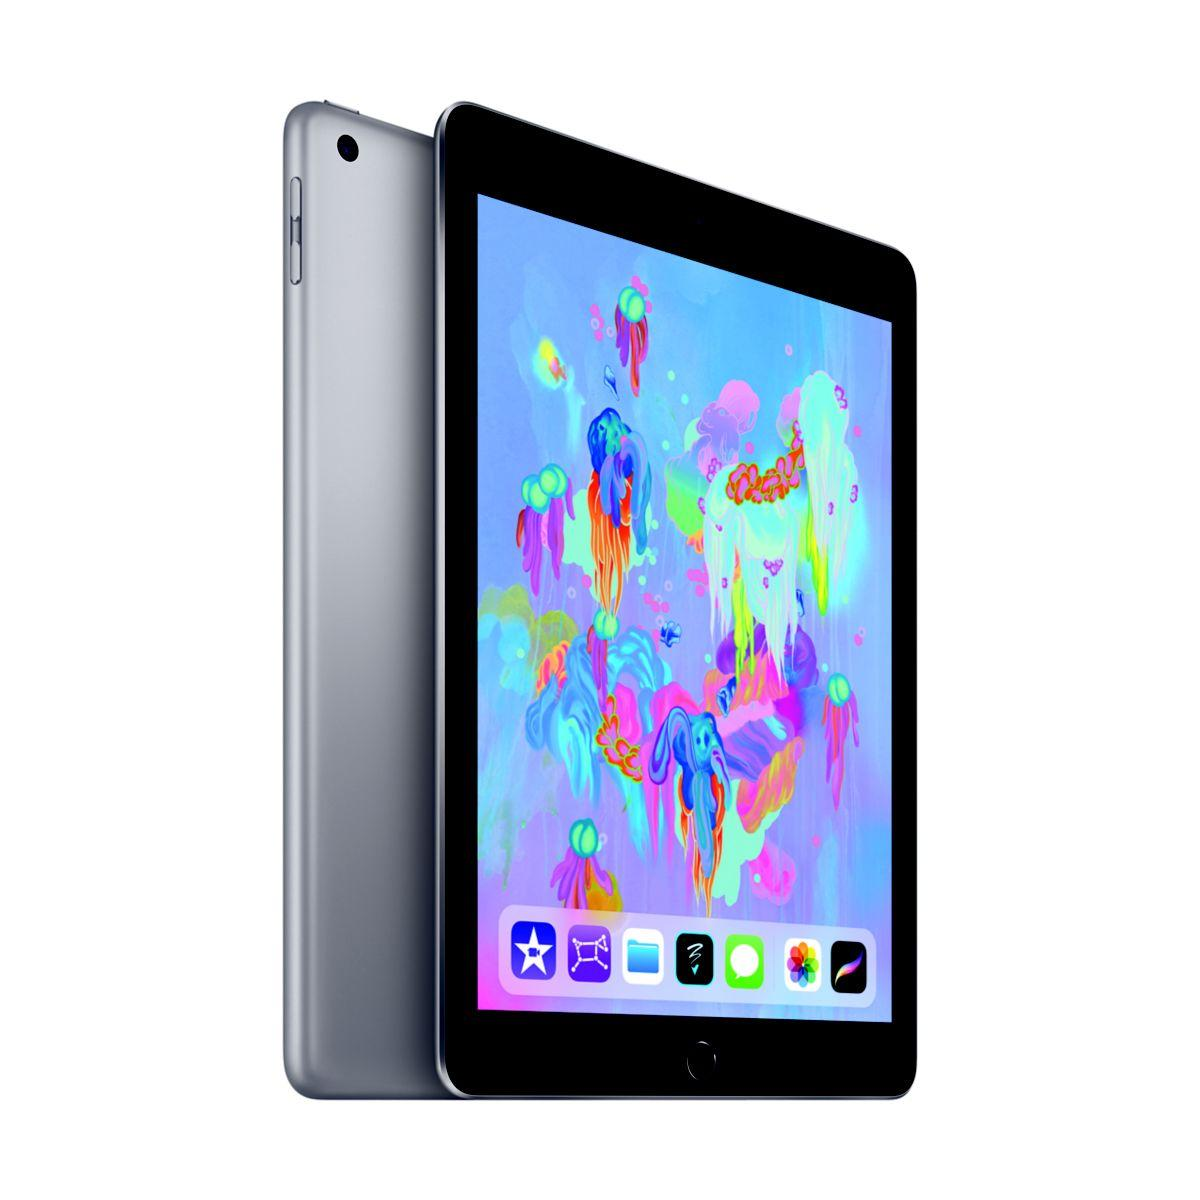 Tablette apple ipad new 32go cell gris sid (photo)